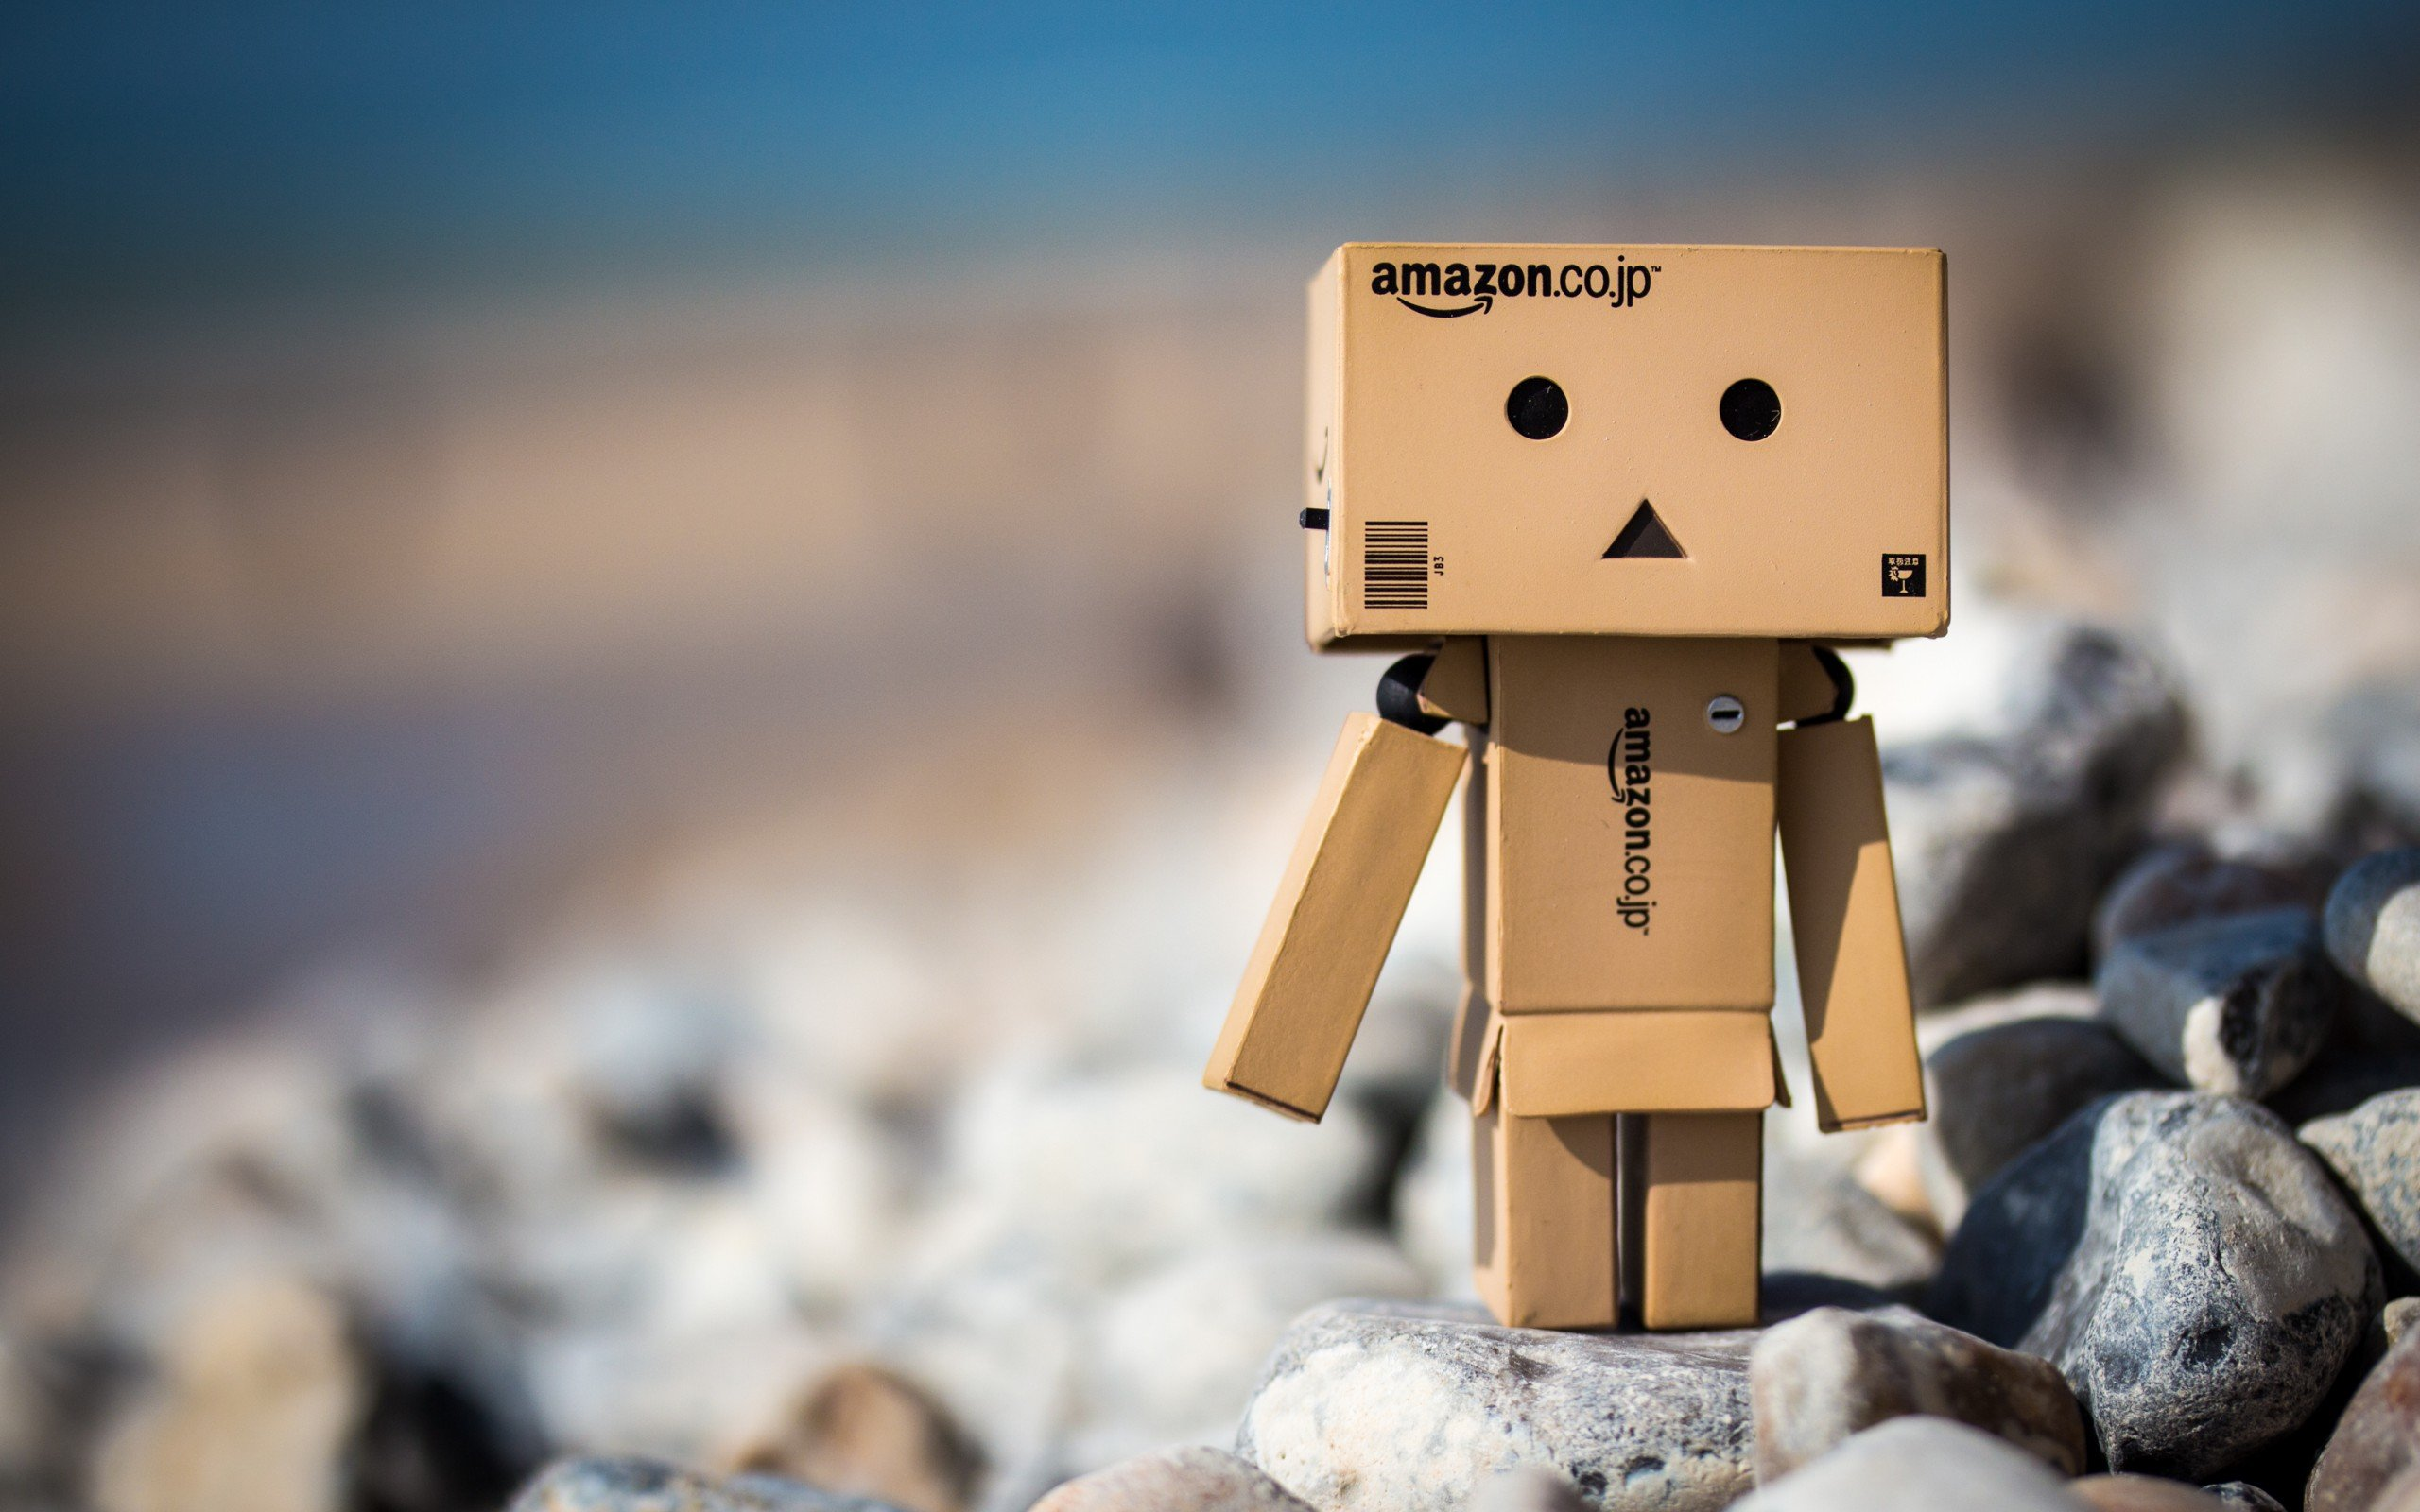 Cute Box Robot Wallpaper Wide Is Cool Wallpapers